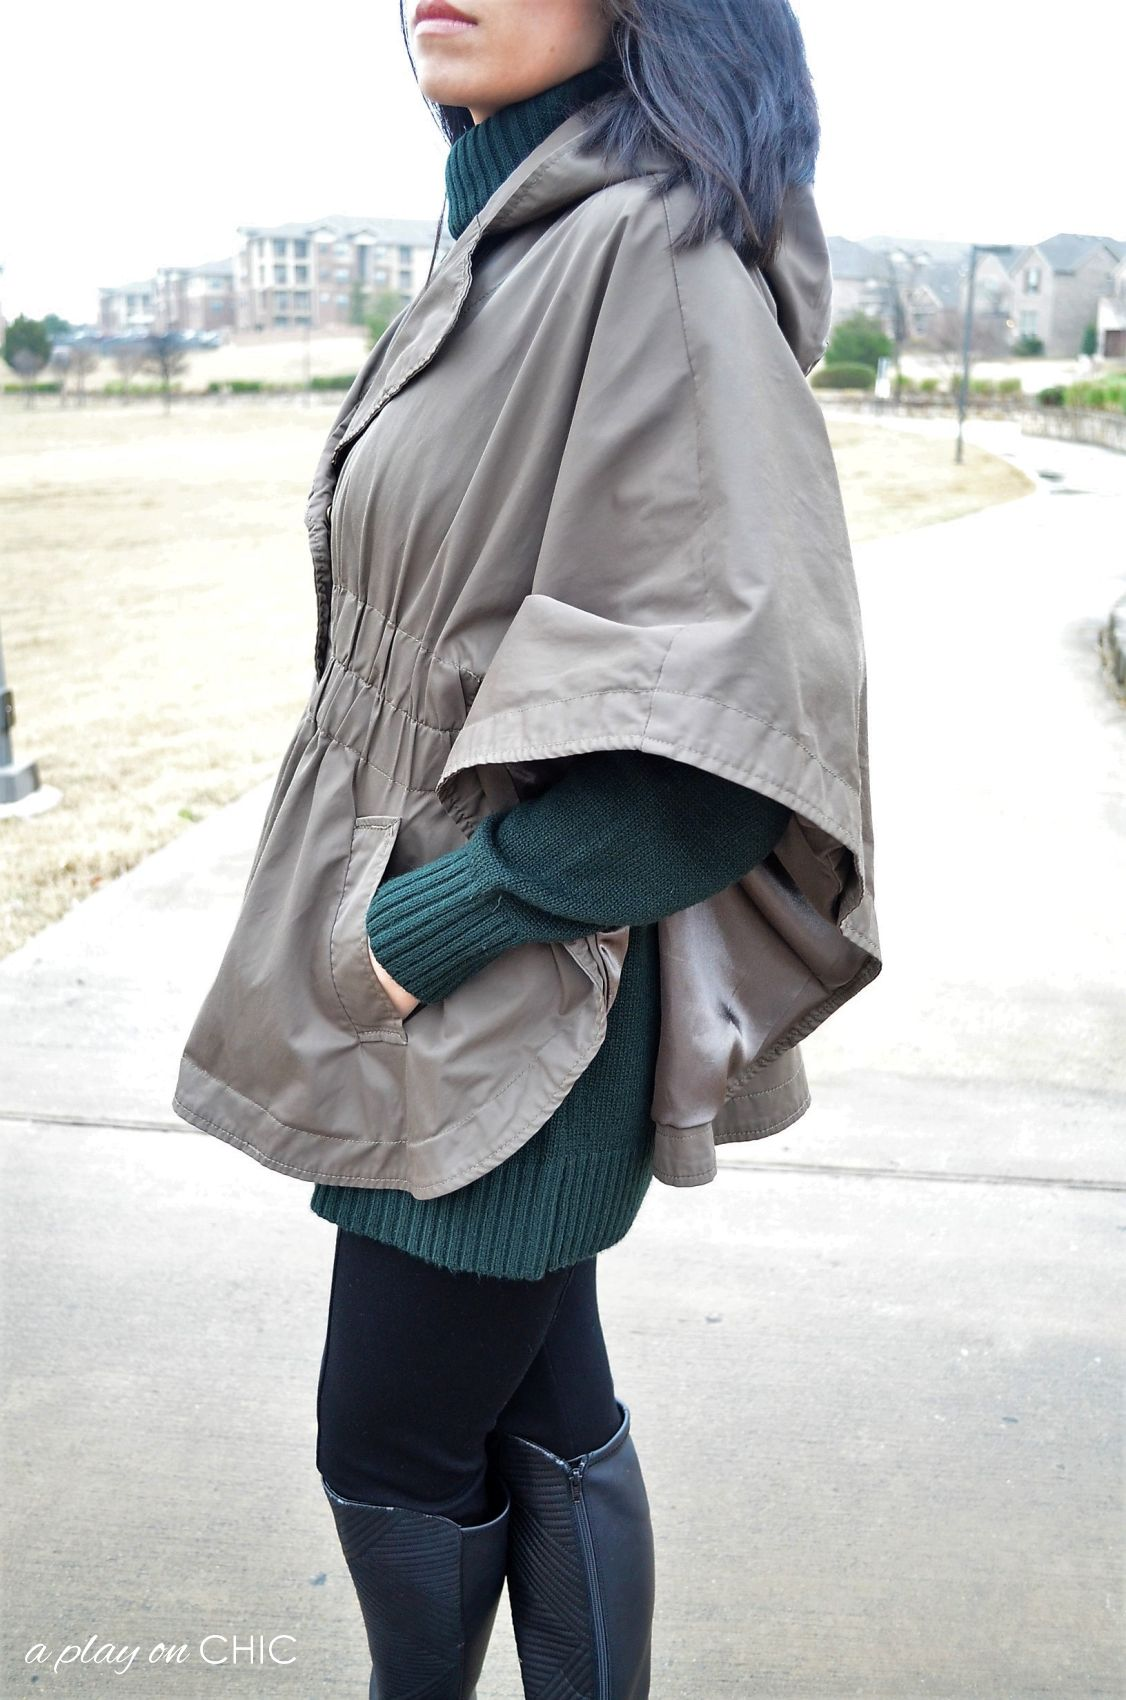 Rainy-Day-Outfit-Essentials-16.jpg